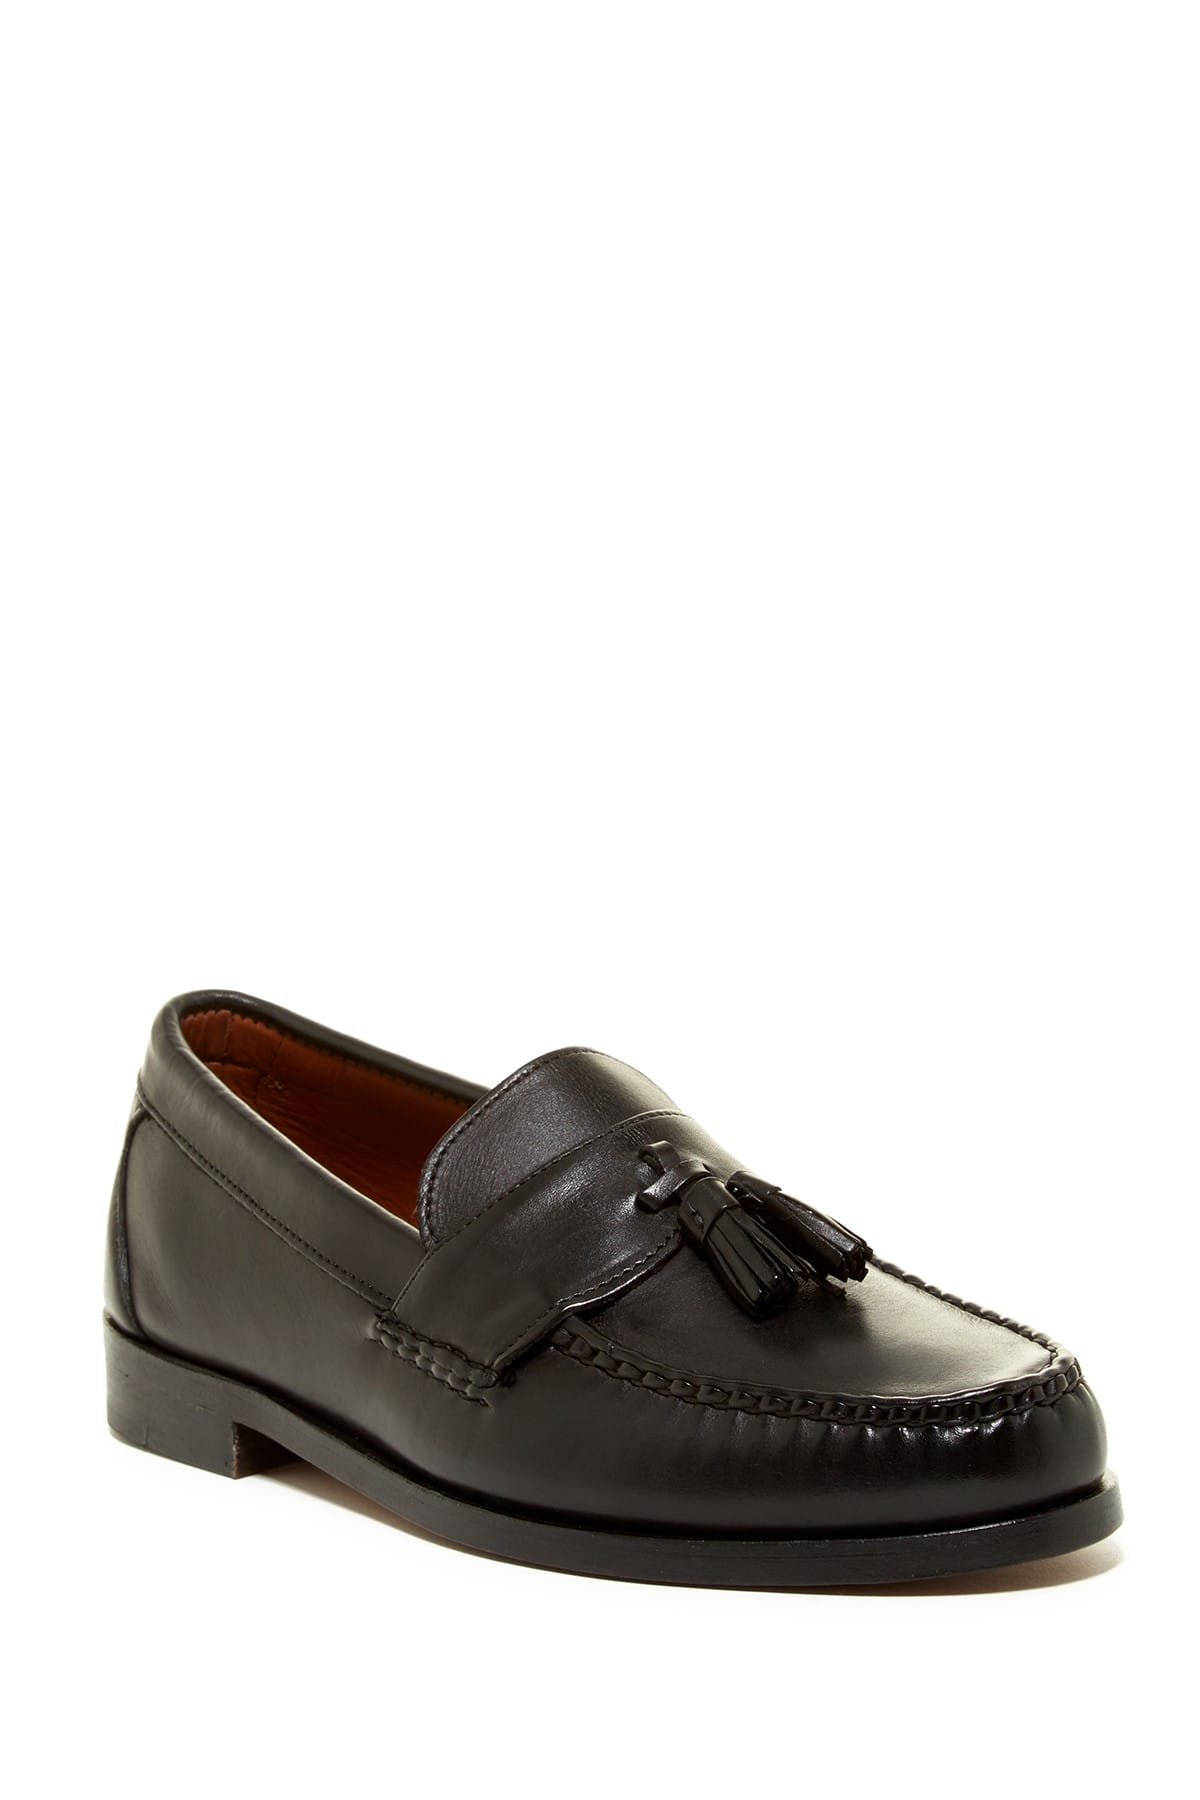 Nordstrom Rack Allen Edmonds Springvale Black Leather Loafer $82.48 + Free S/H $100+